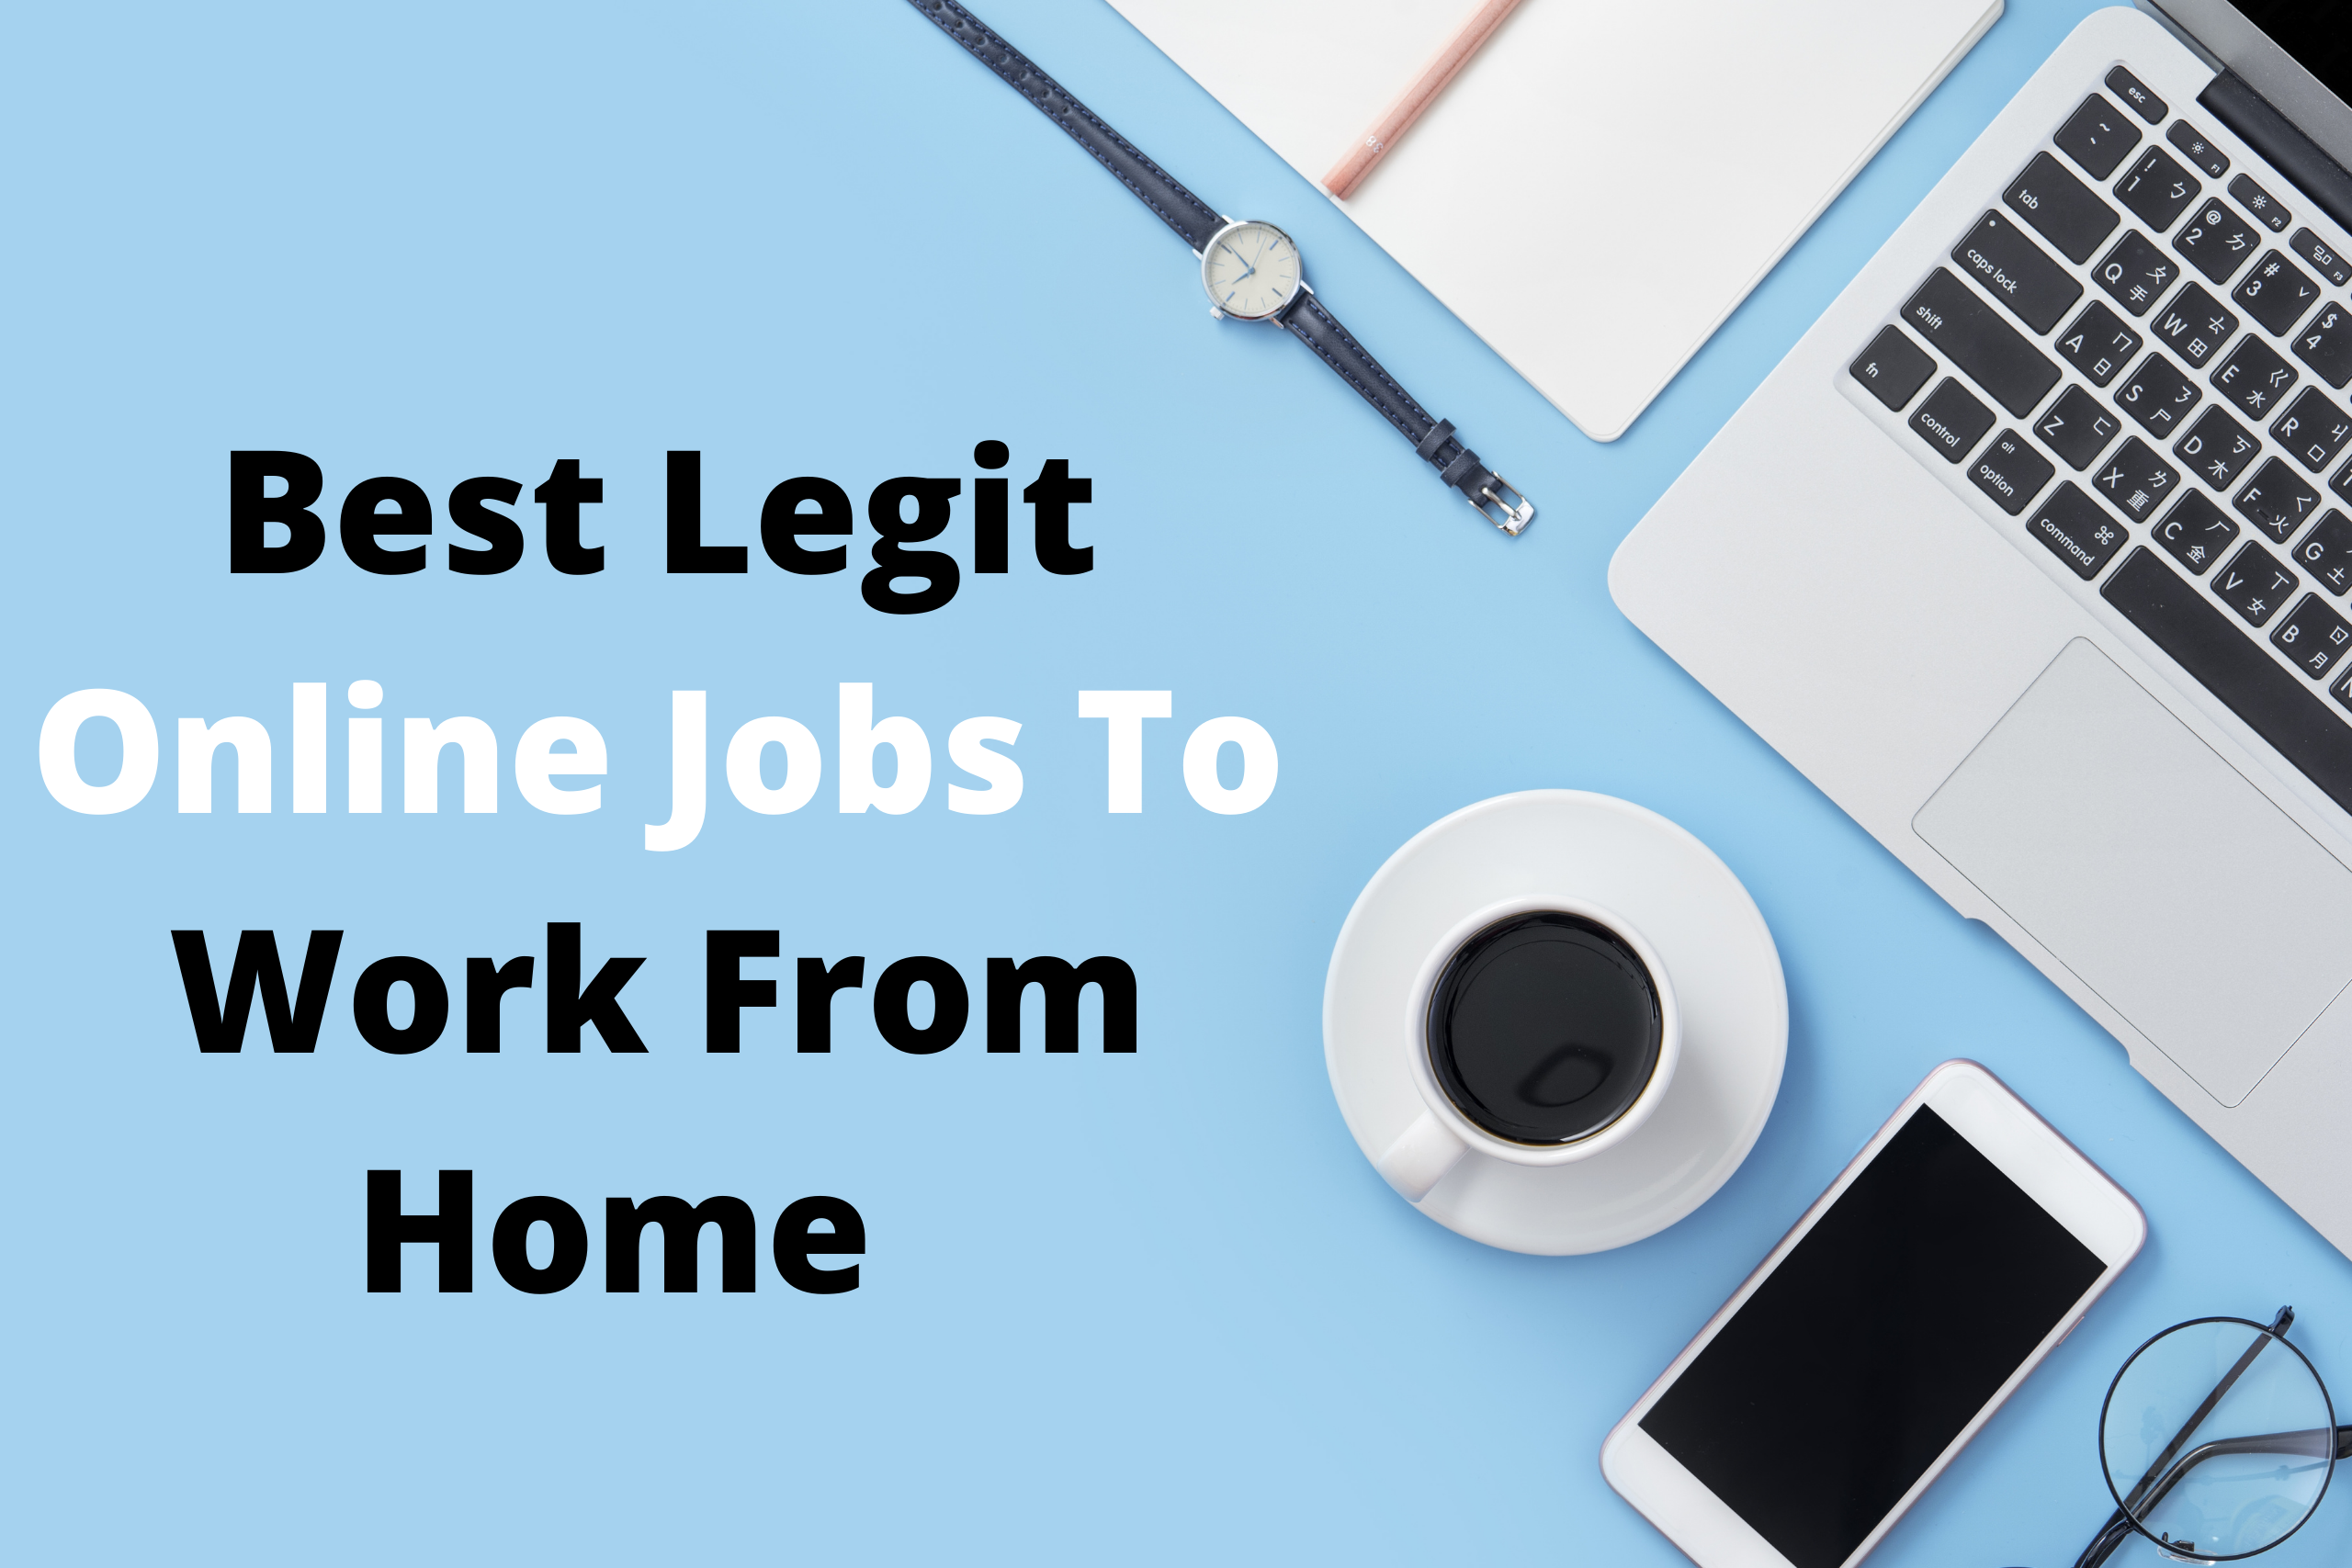 Best Legit Online Jobs to Work From Home that are Flexible and Pay Well (2021)